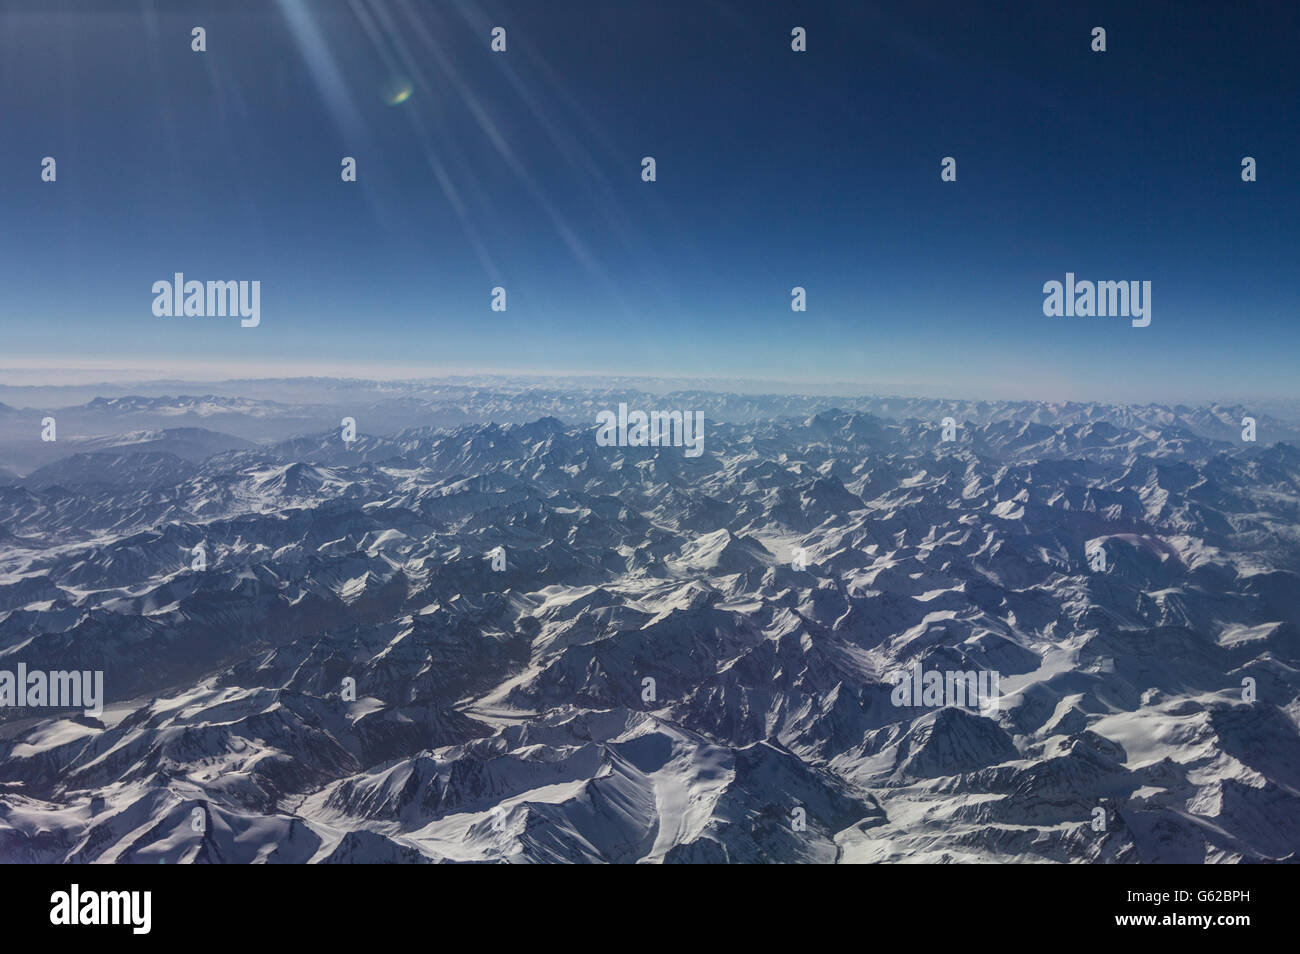 View of Himalayan mountains - Stock Image